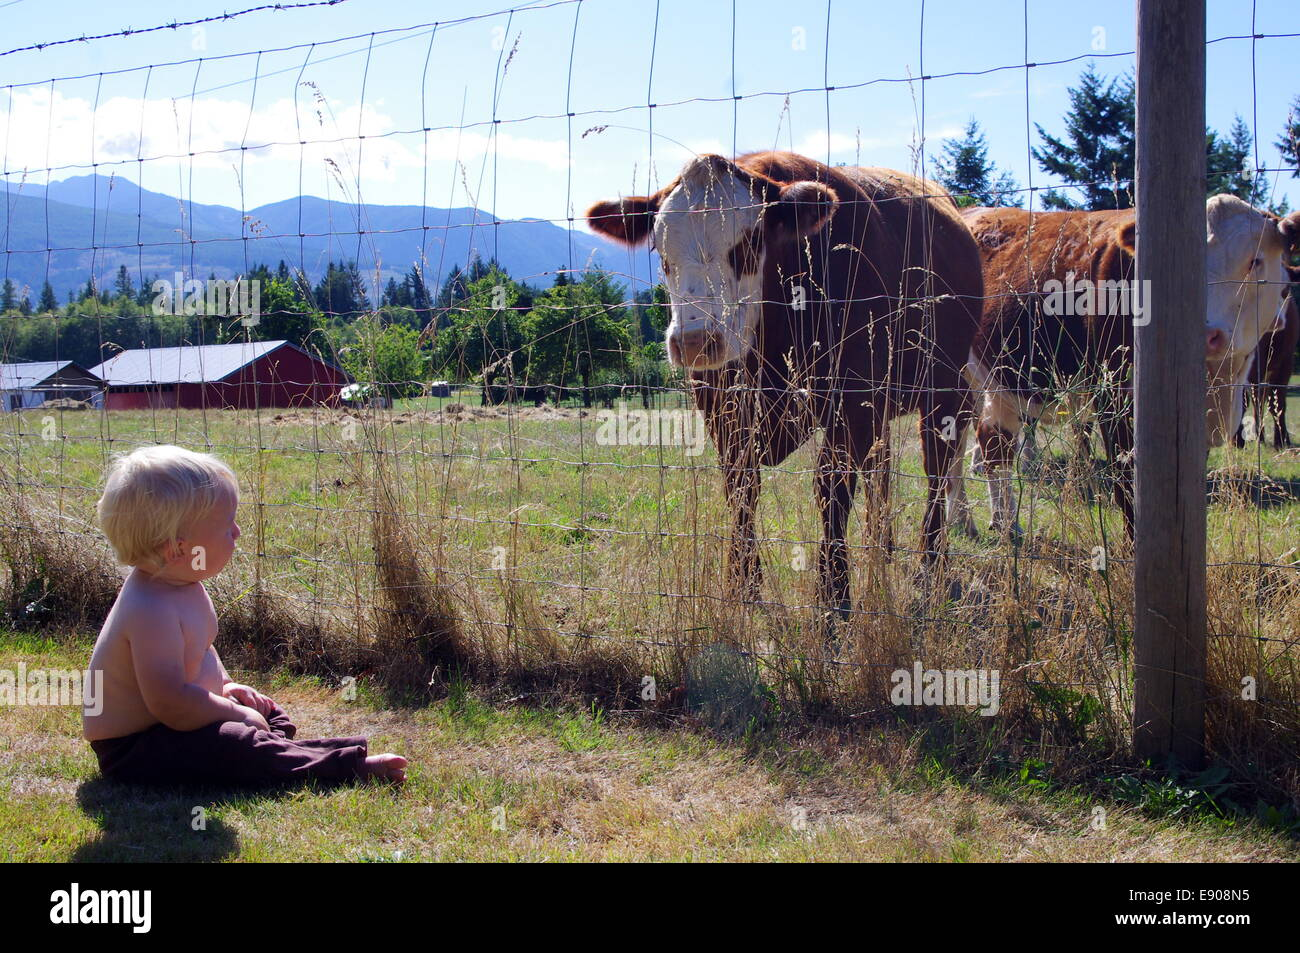 Photograph of a cow and a baby looking at each other. - Stock Image